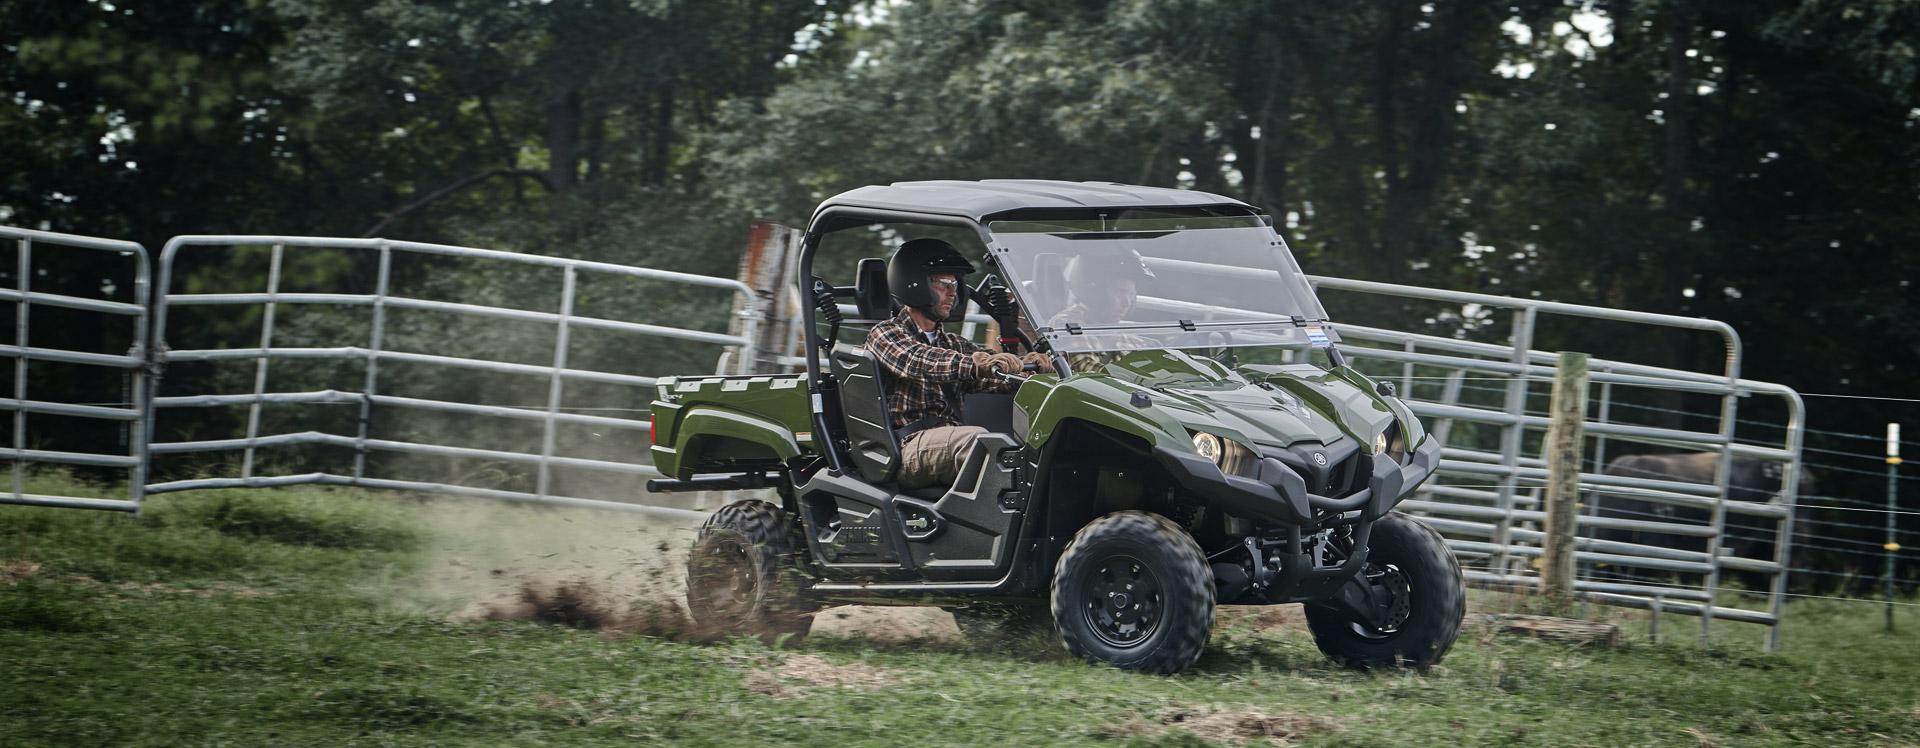 2020 Yamaha Viking-Eps